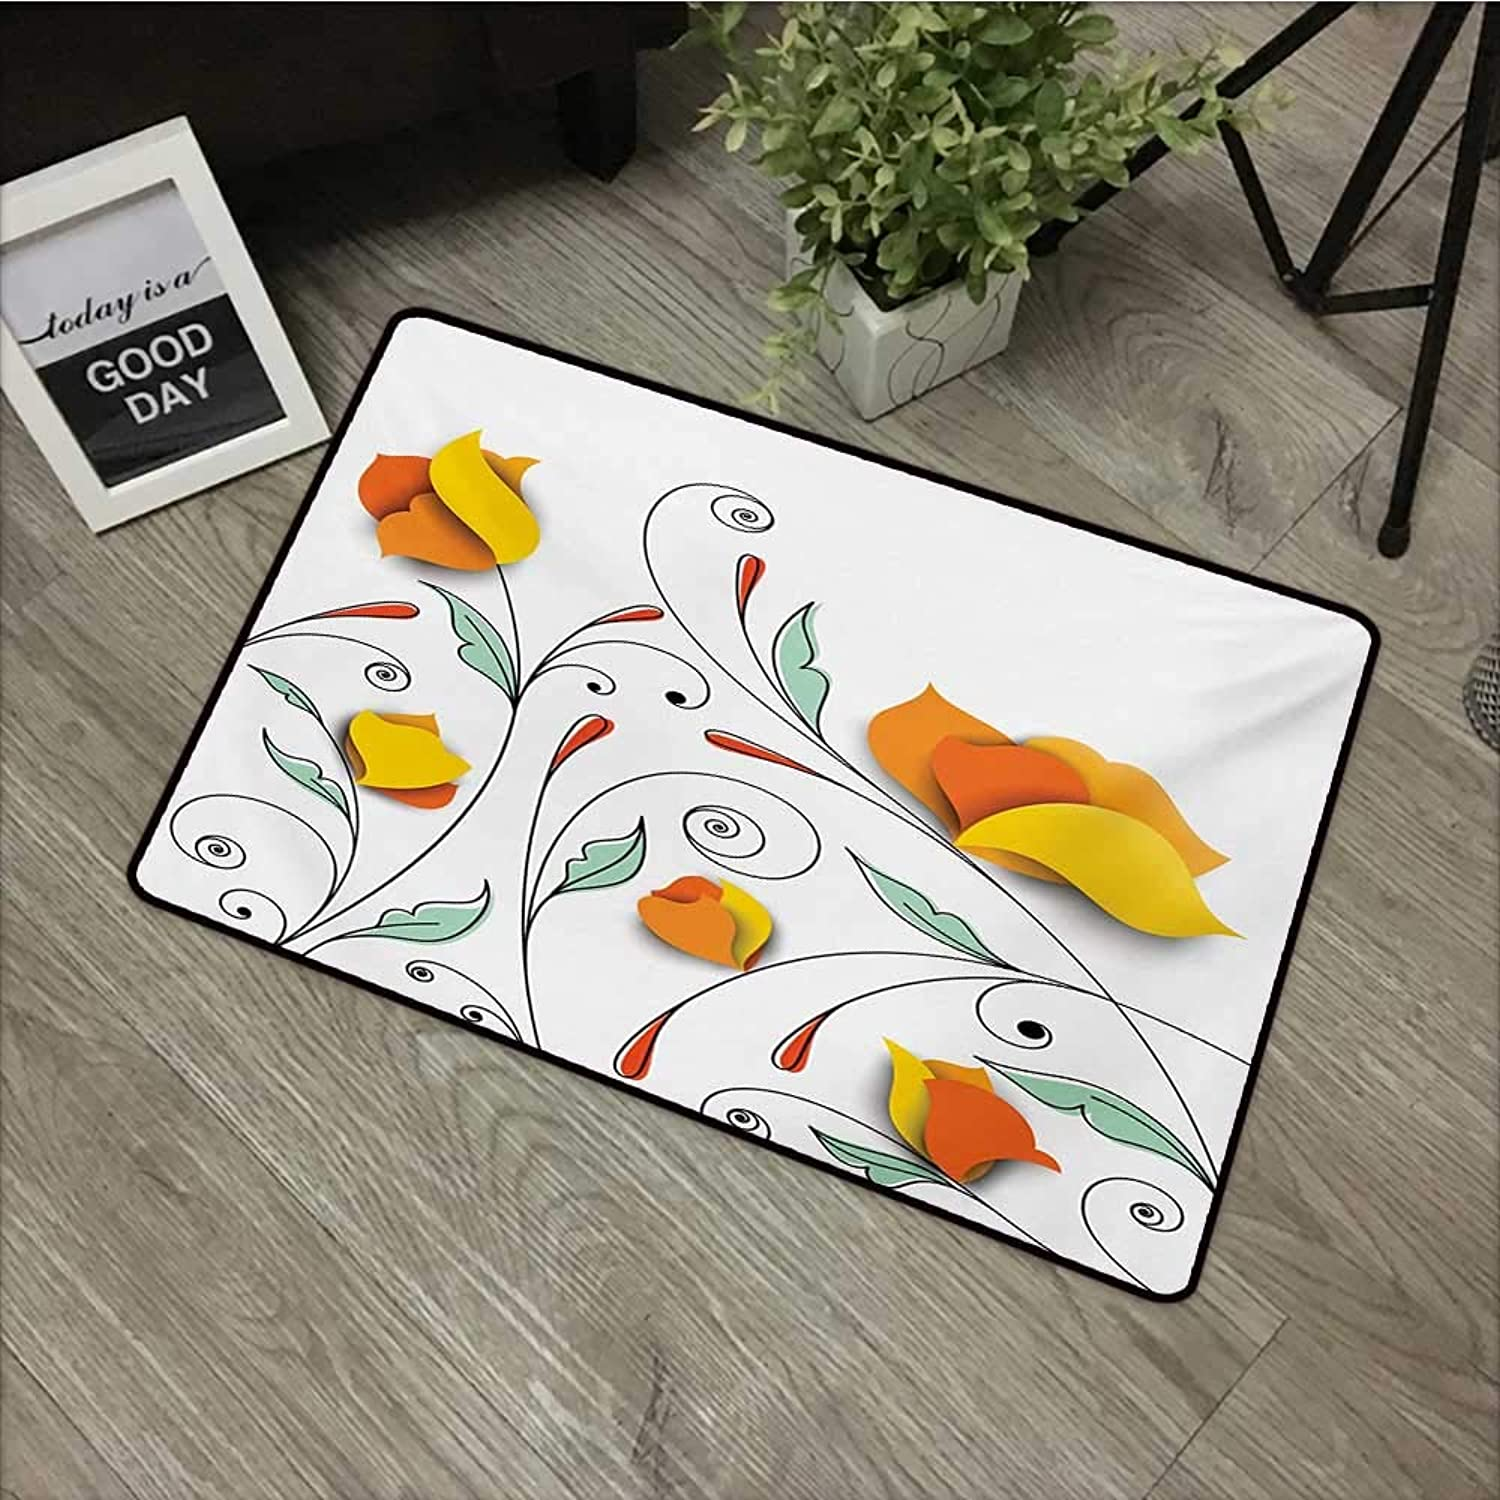 Bedroom Door mat W35 x L47 INCH Floral,Bouquet with Swirled Branches Romantic Paper Flowers Origami Autumn Blooms Image,Mint orange Easy to Clean, no Deformation, no Fading Non-Slip Door Mat Carpet